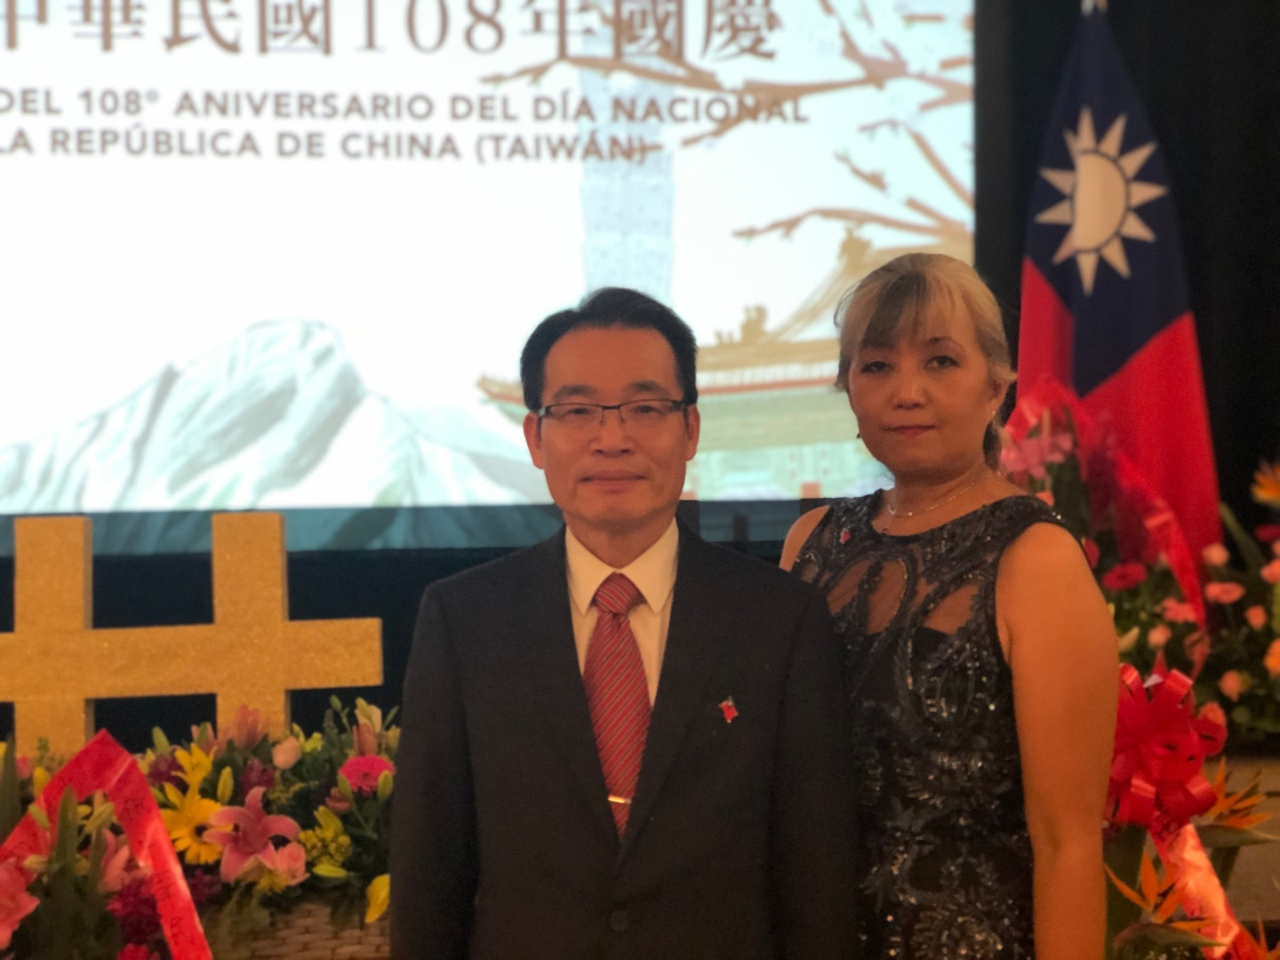 Taiwanese Rep in Mexico Holds National Day Reception